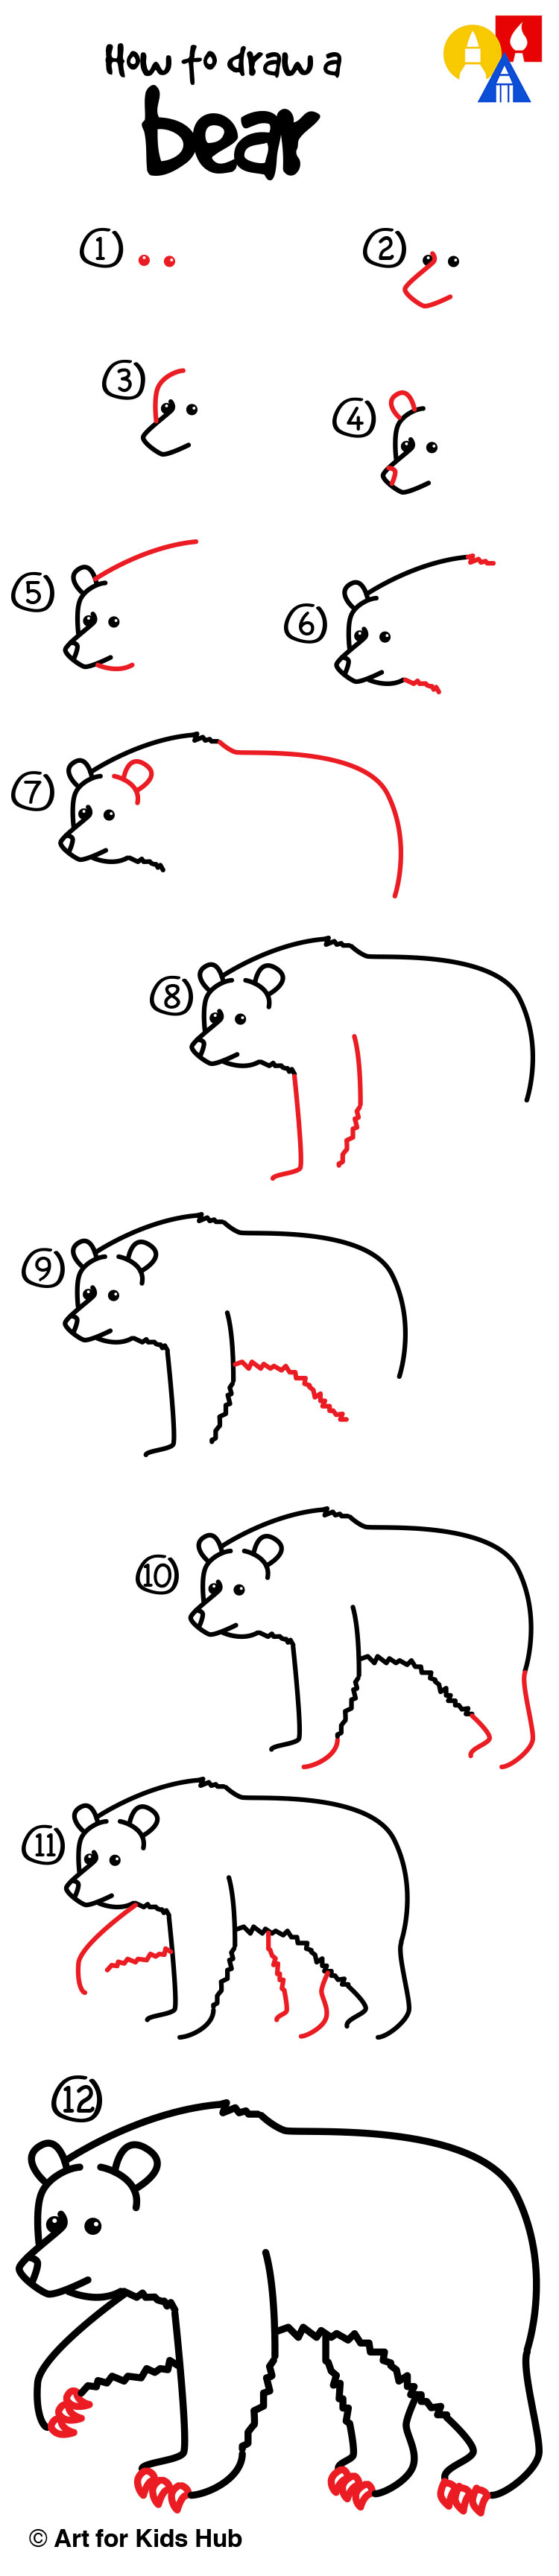 Drawn grizzly bear step by step Draw bear! on Easy